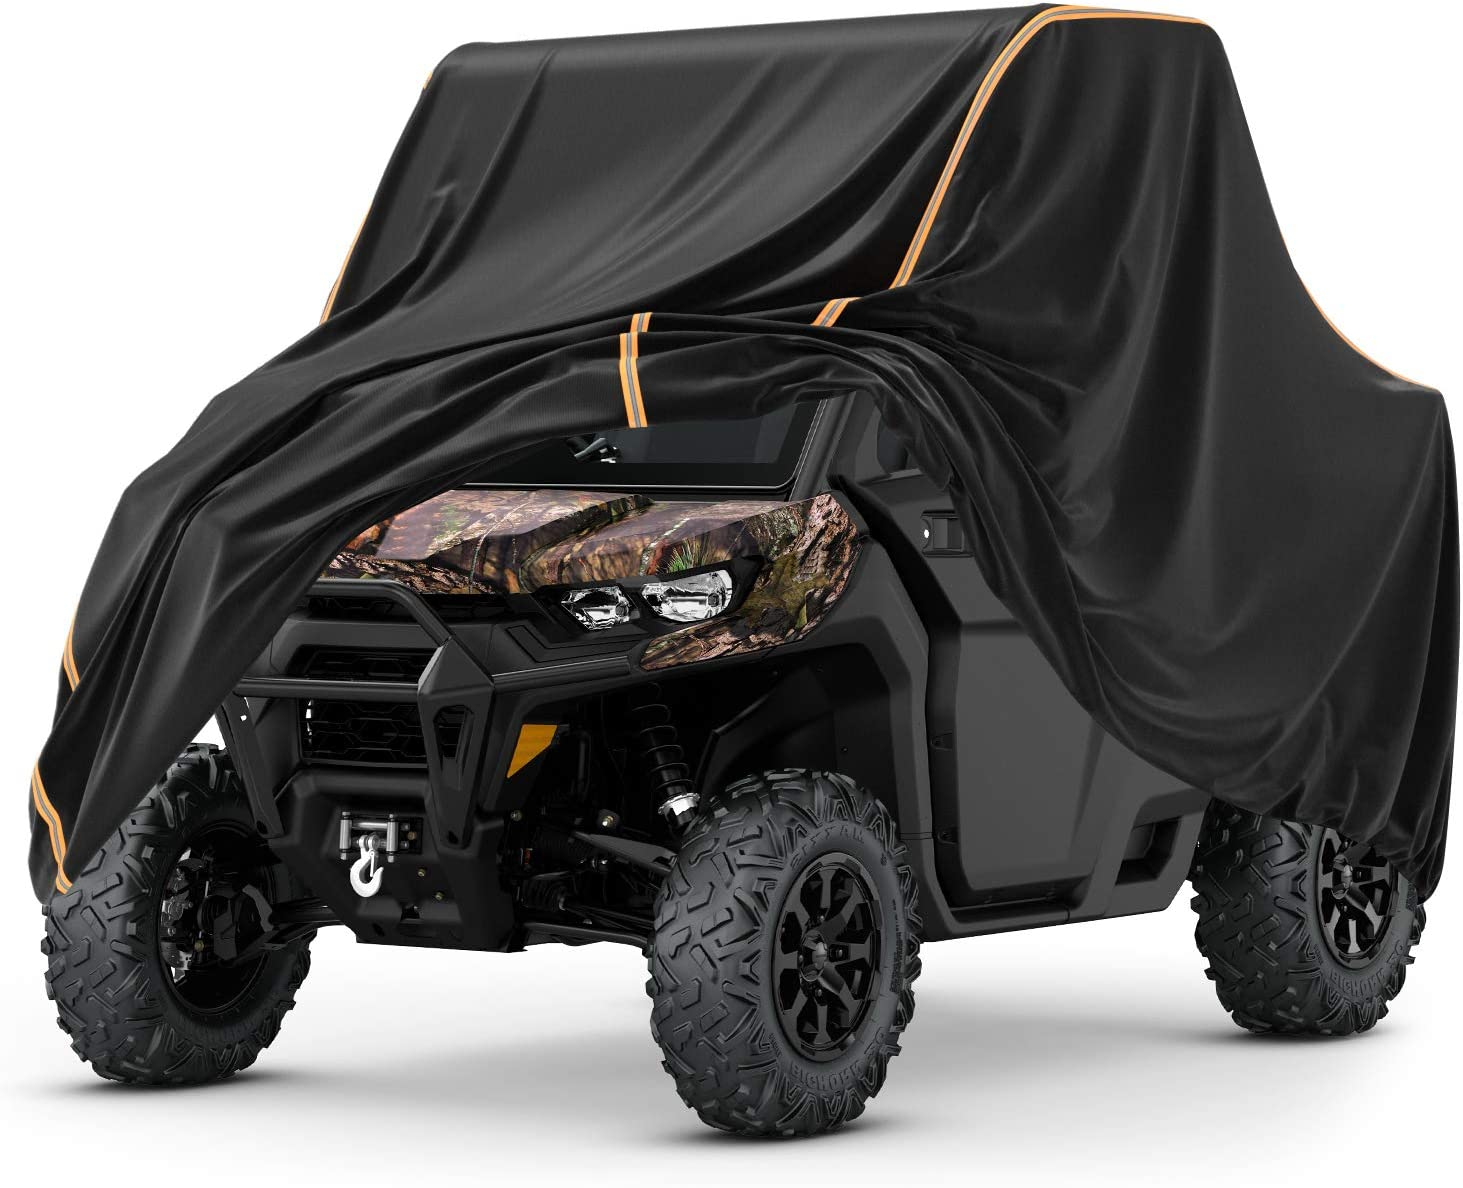 Kemimoto UTV Cover, All- Weather Protection UTV Cover compatible with Can Am Defender Commander Polaris RZR Ranger Yamaha Rhino Honda Pioneer Kawasaki Mule Teryx 2-3 Seaters Large 126